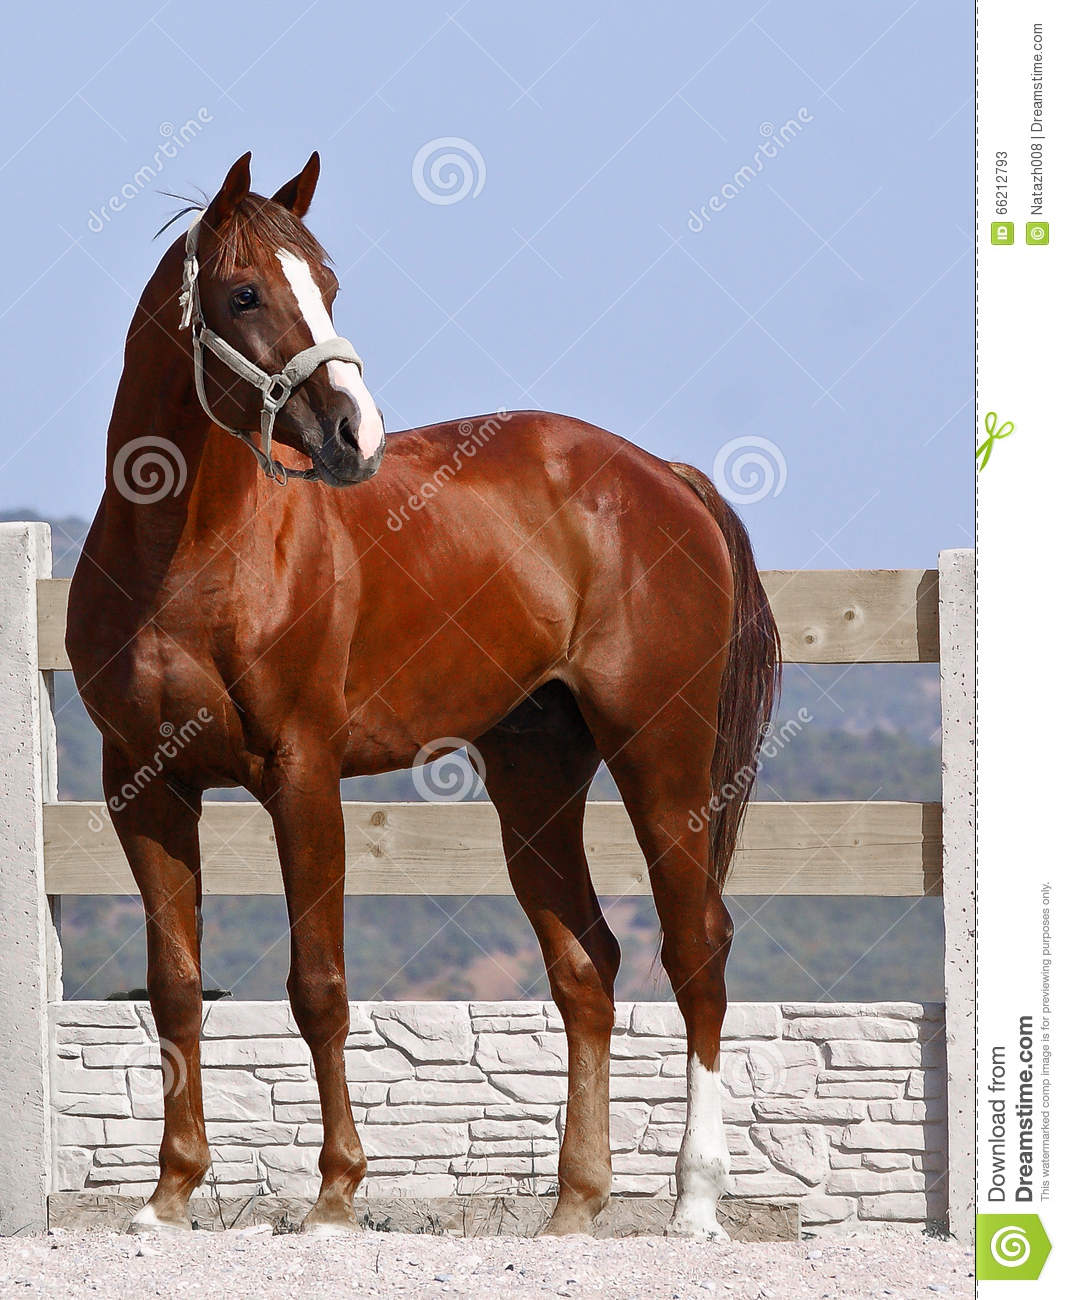 Brown Horse With A White Spot Stock Photo - Image: 66212793